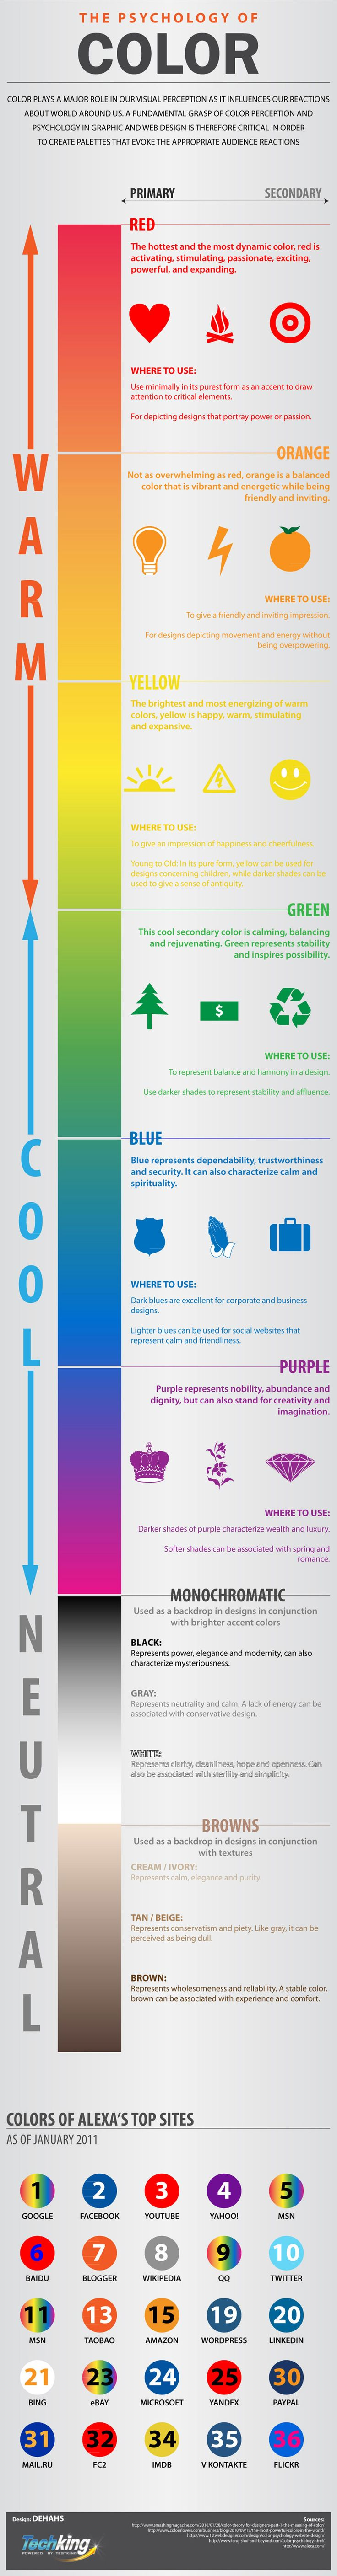 Psychology of Color.